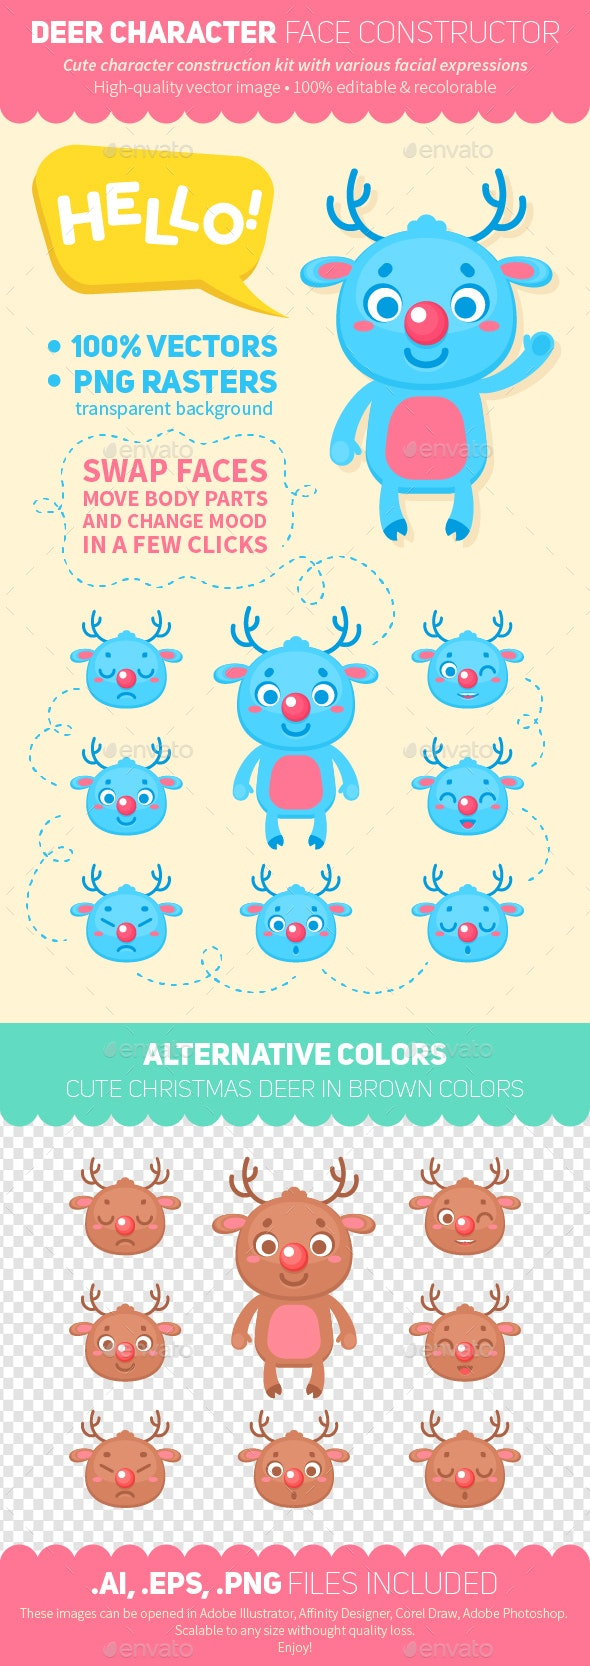 Deer Character Faces Construction Kit - Animals Characters